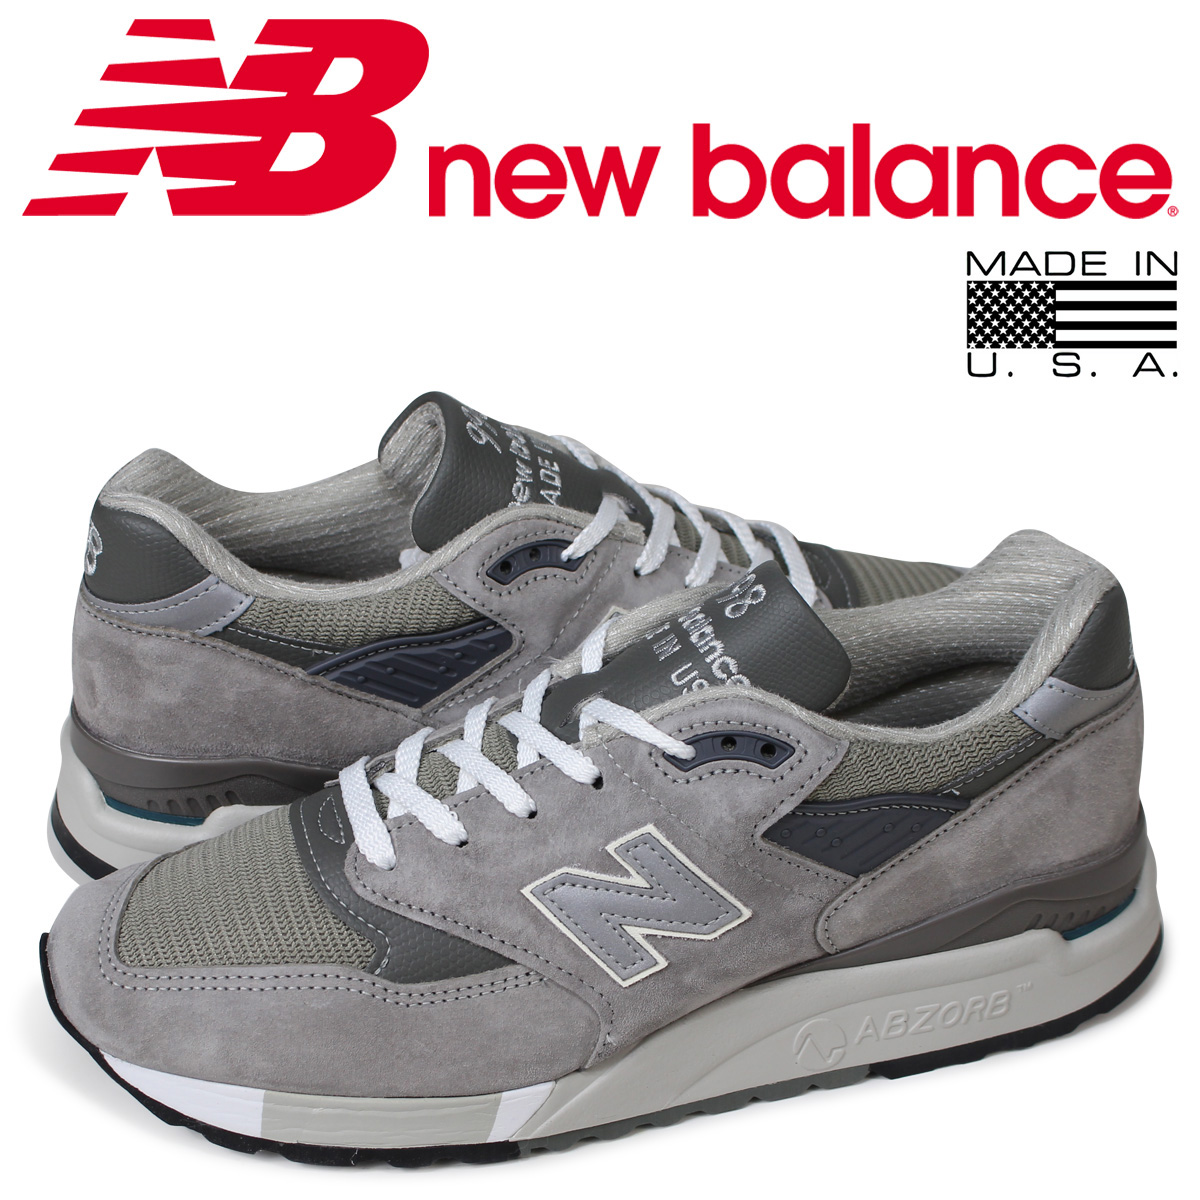 online retailer a4c0e 30d14 New Balance new balance 998 men's sneakers MADE IN USA D Wise gray M998 GY  [the load planned additional arrival in reservation product 9/13 ...